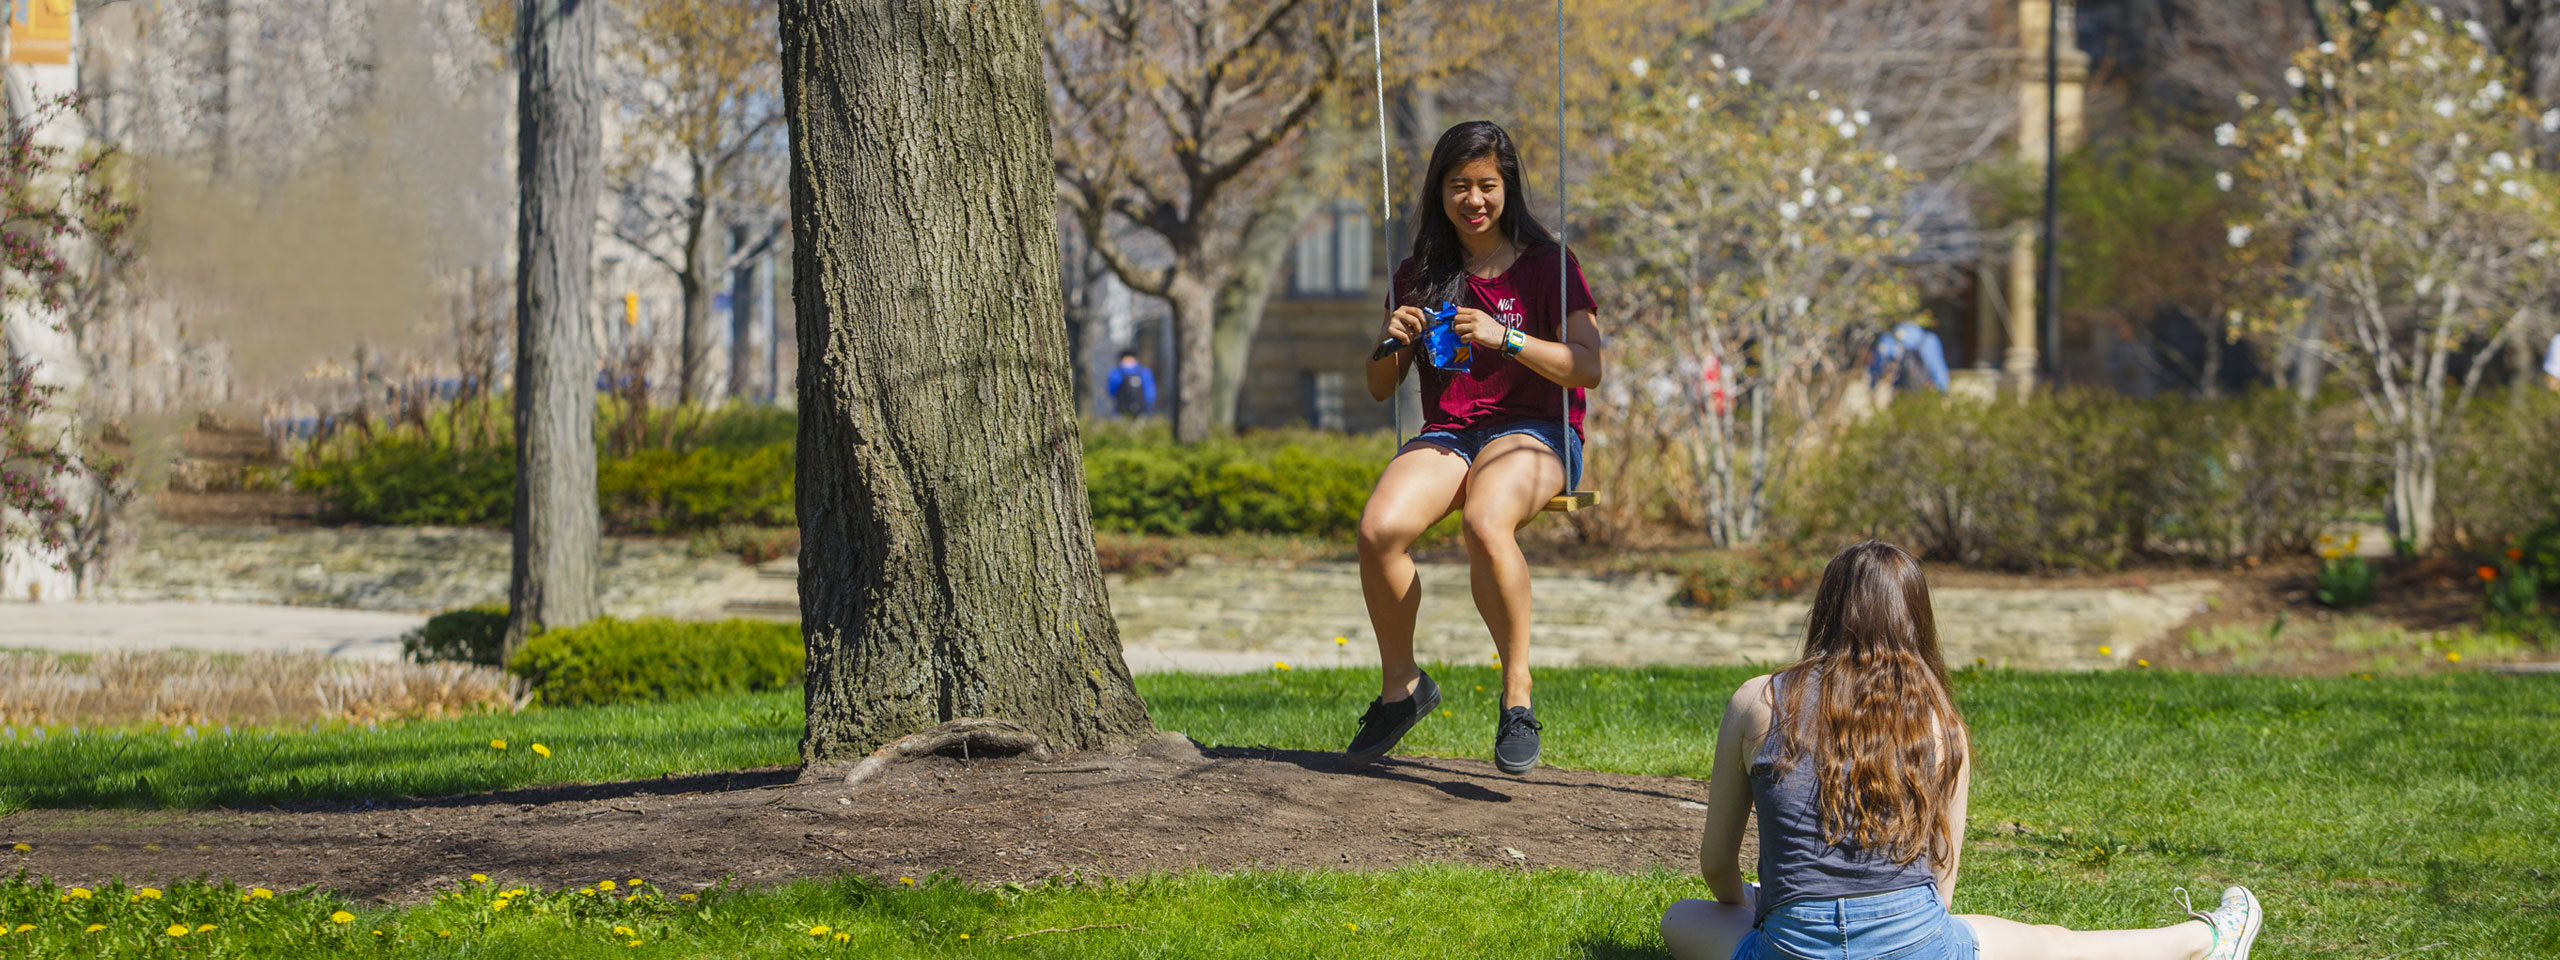 Photo of a girl swinging on campus